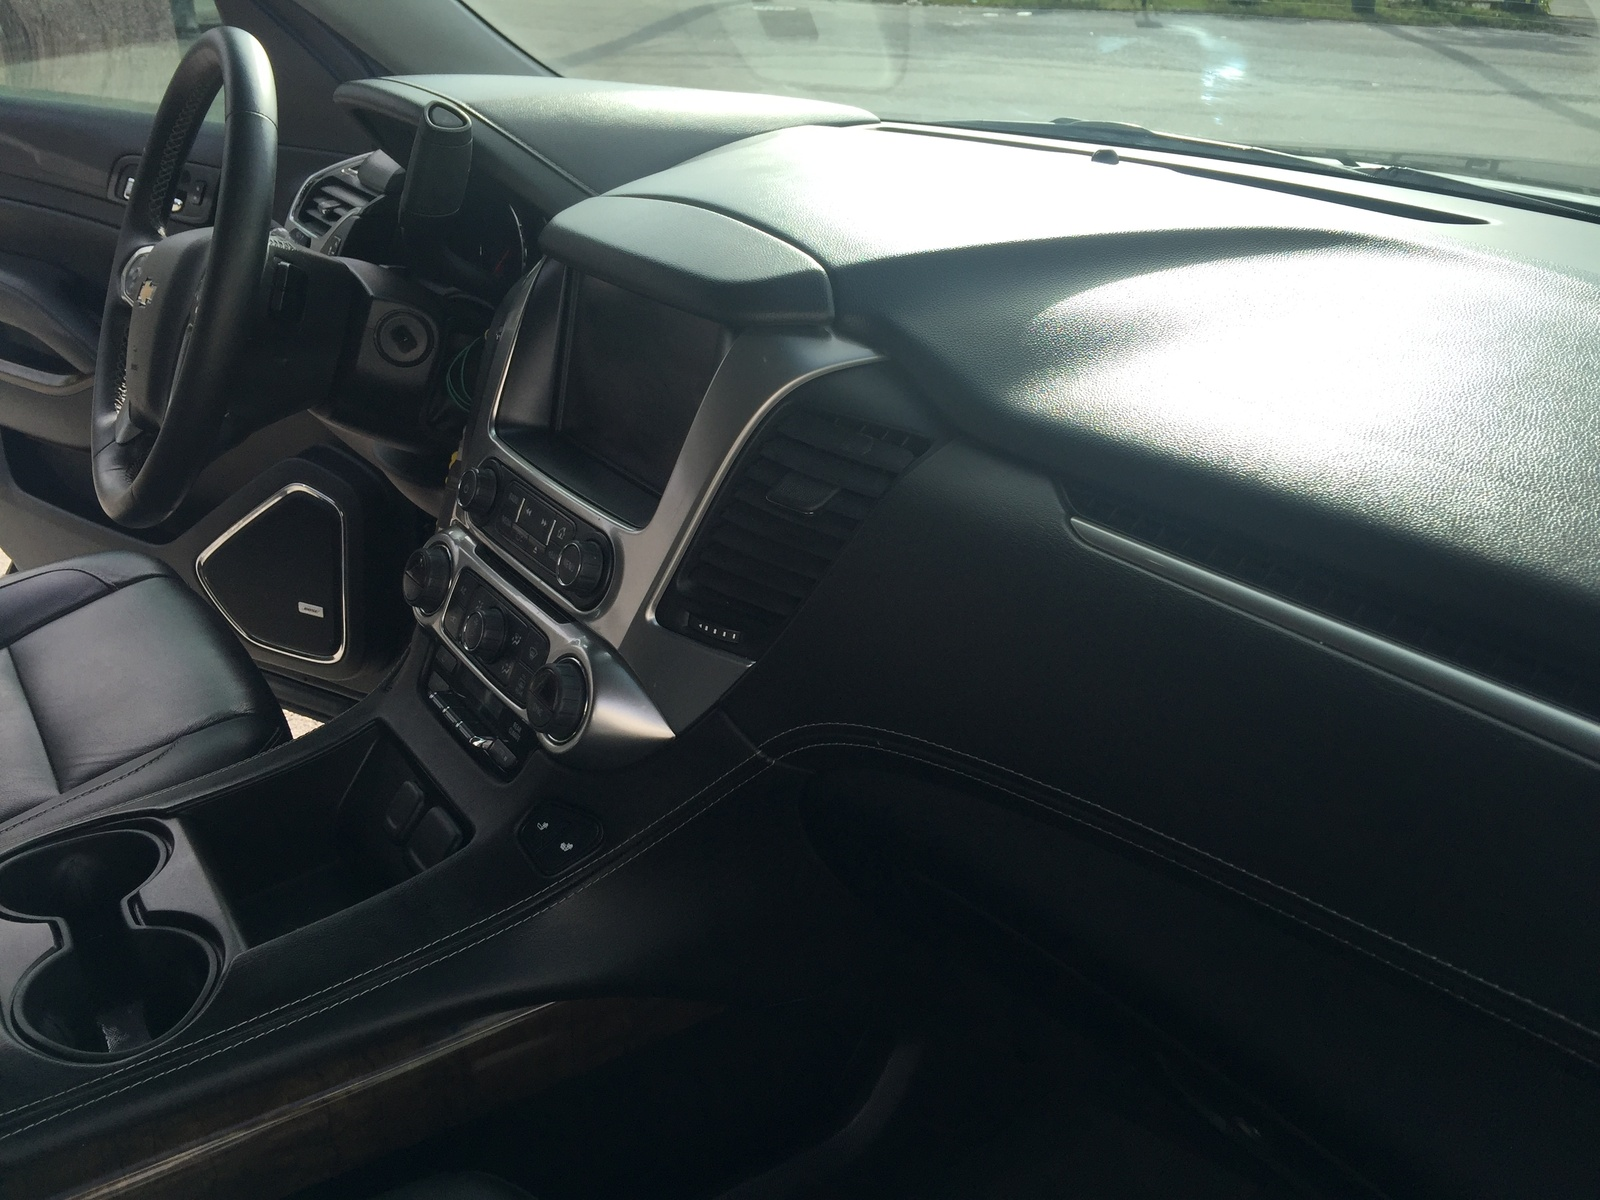 used chevrolet tahoe for sale akron oh cargurus autos post. Black Bedroom Furniture Sets. Home Design Ideas